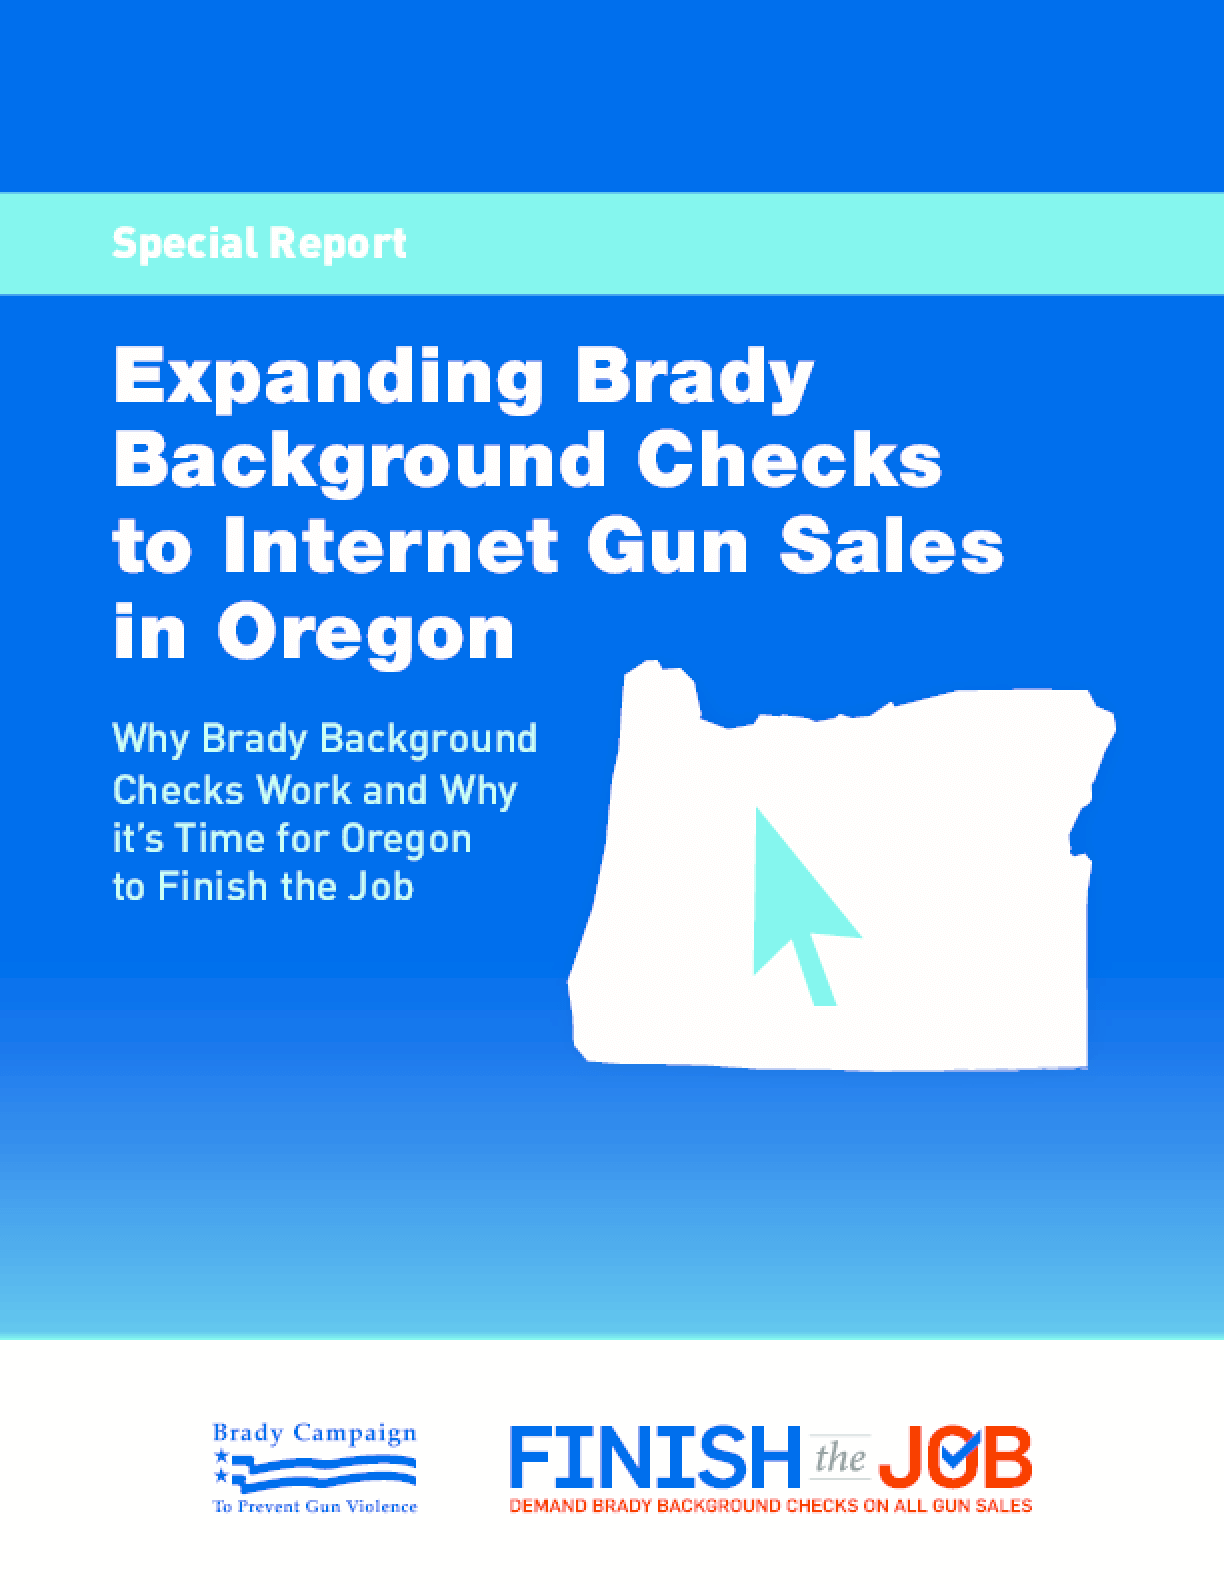 The inefficacy of the brady act in the issue of gun violence in the united states